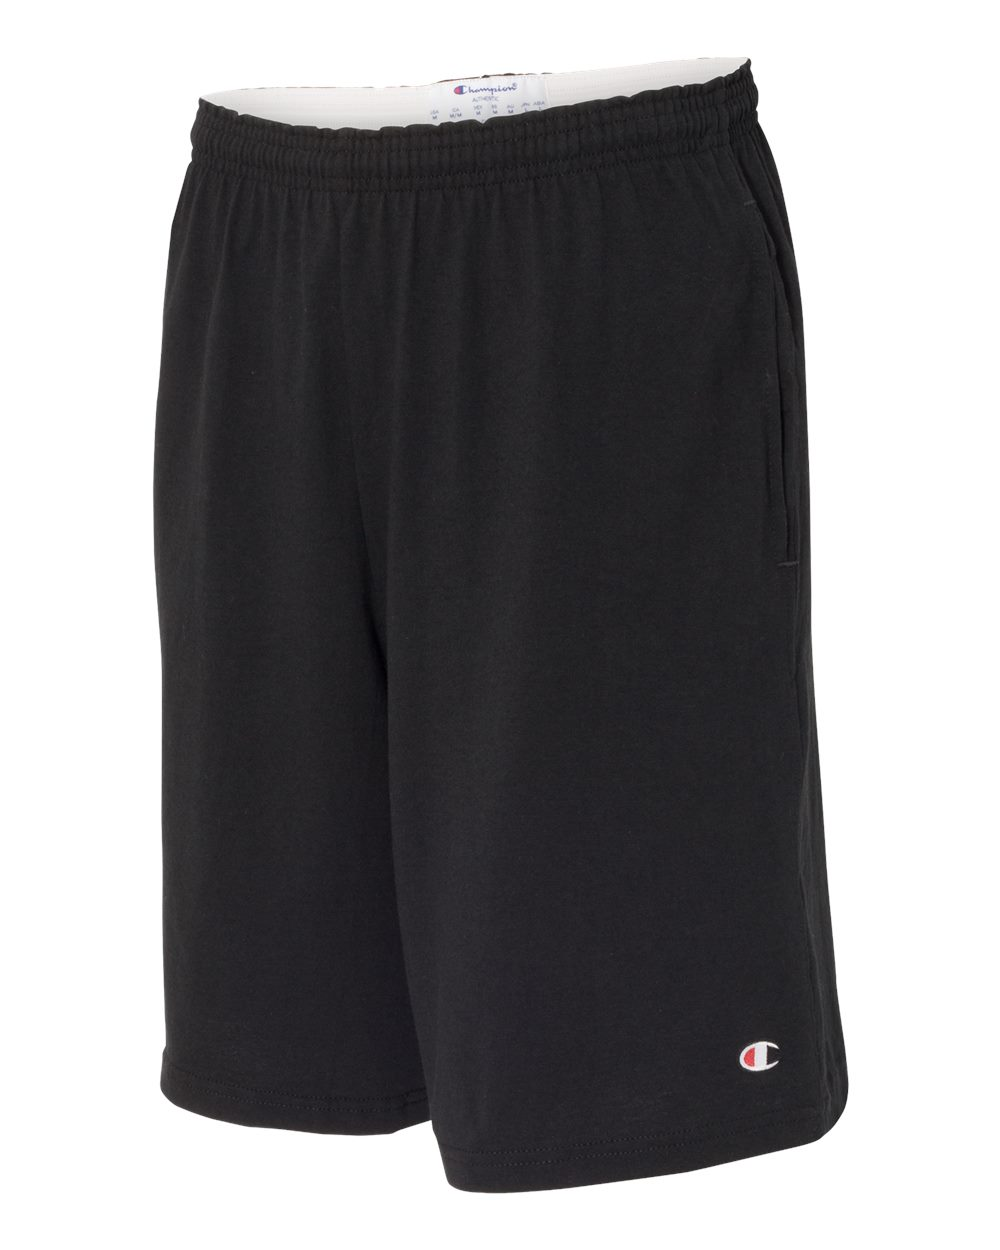 "Champion 8180 - 9"" Inseam Cotton Jersey Shorts with Pockets"